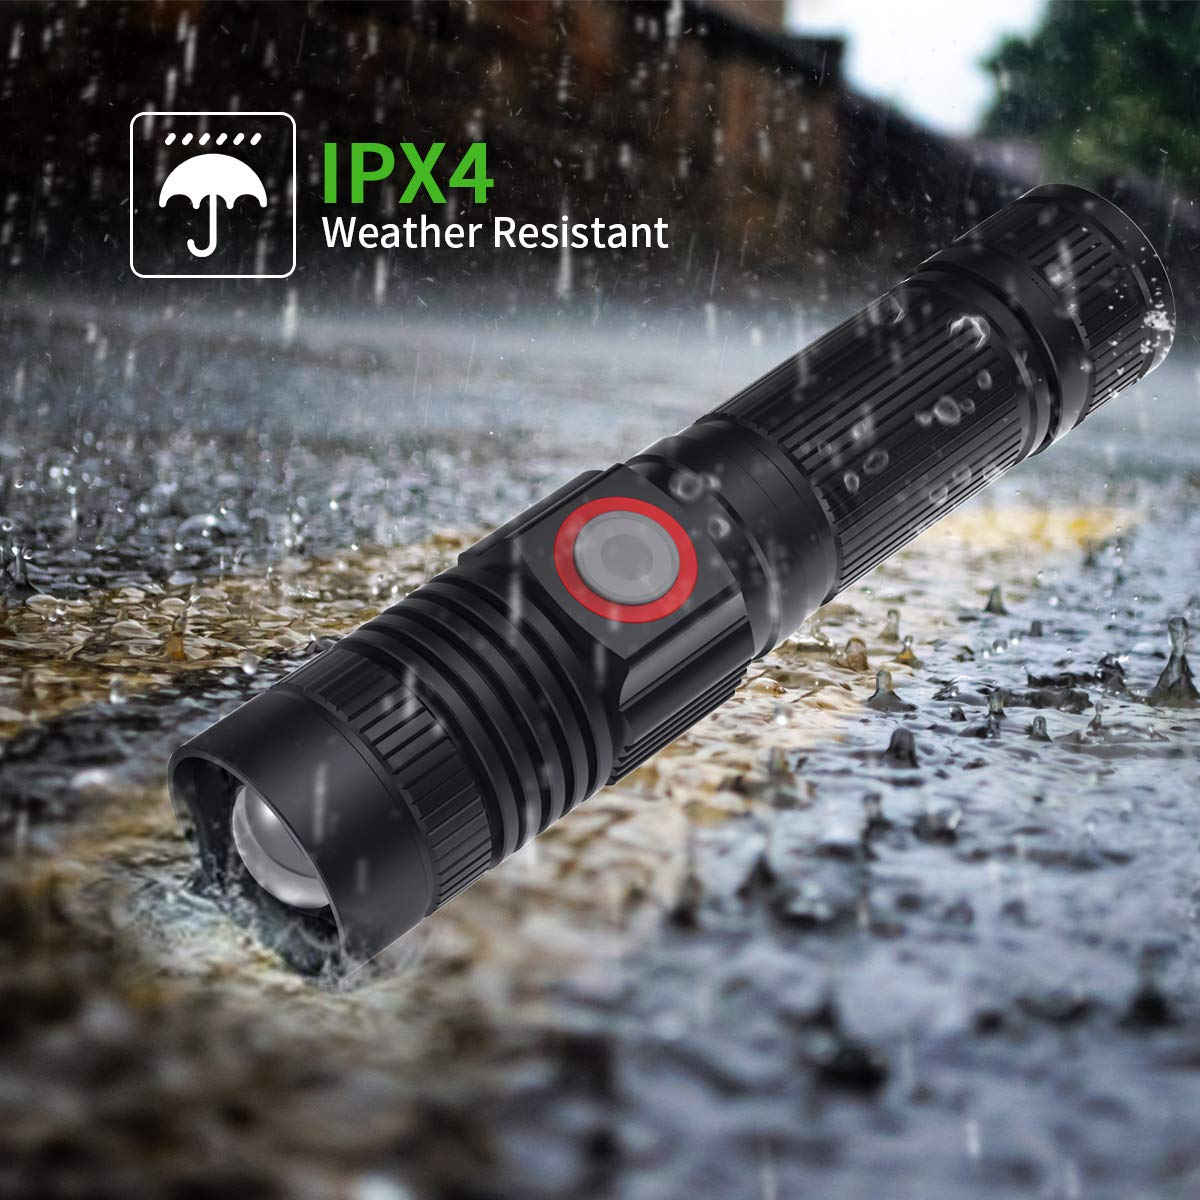 1000LM Rechargeable Flashlight, Pocket Size LED Flashlight Ultra Bright with 5 Light Modes, Zoomable Light, Water Resistant, Portable Handheld Flashlight for Home, Camping, Outdoor, Emergency